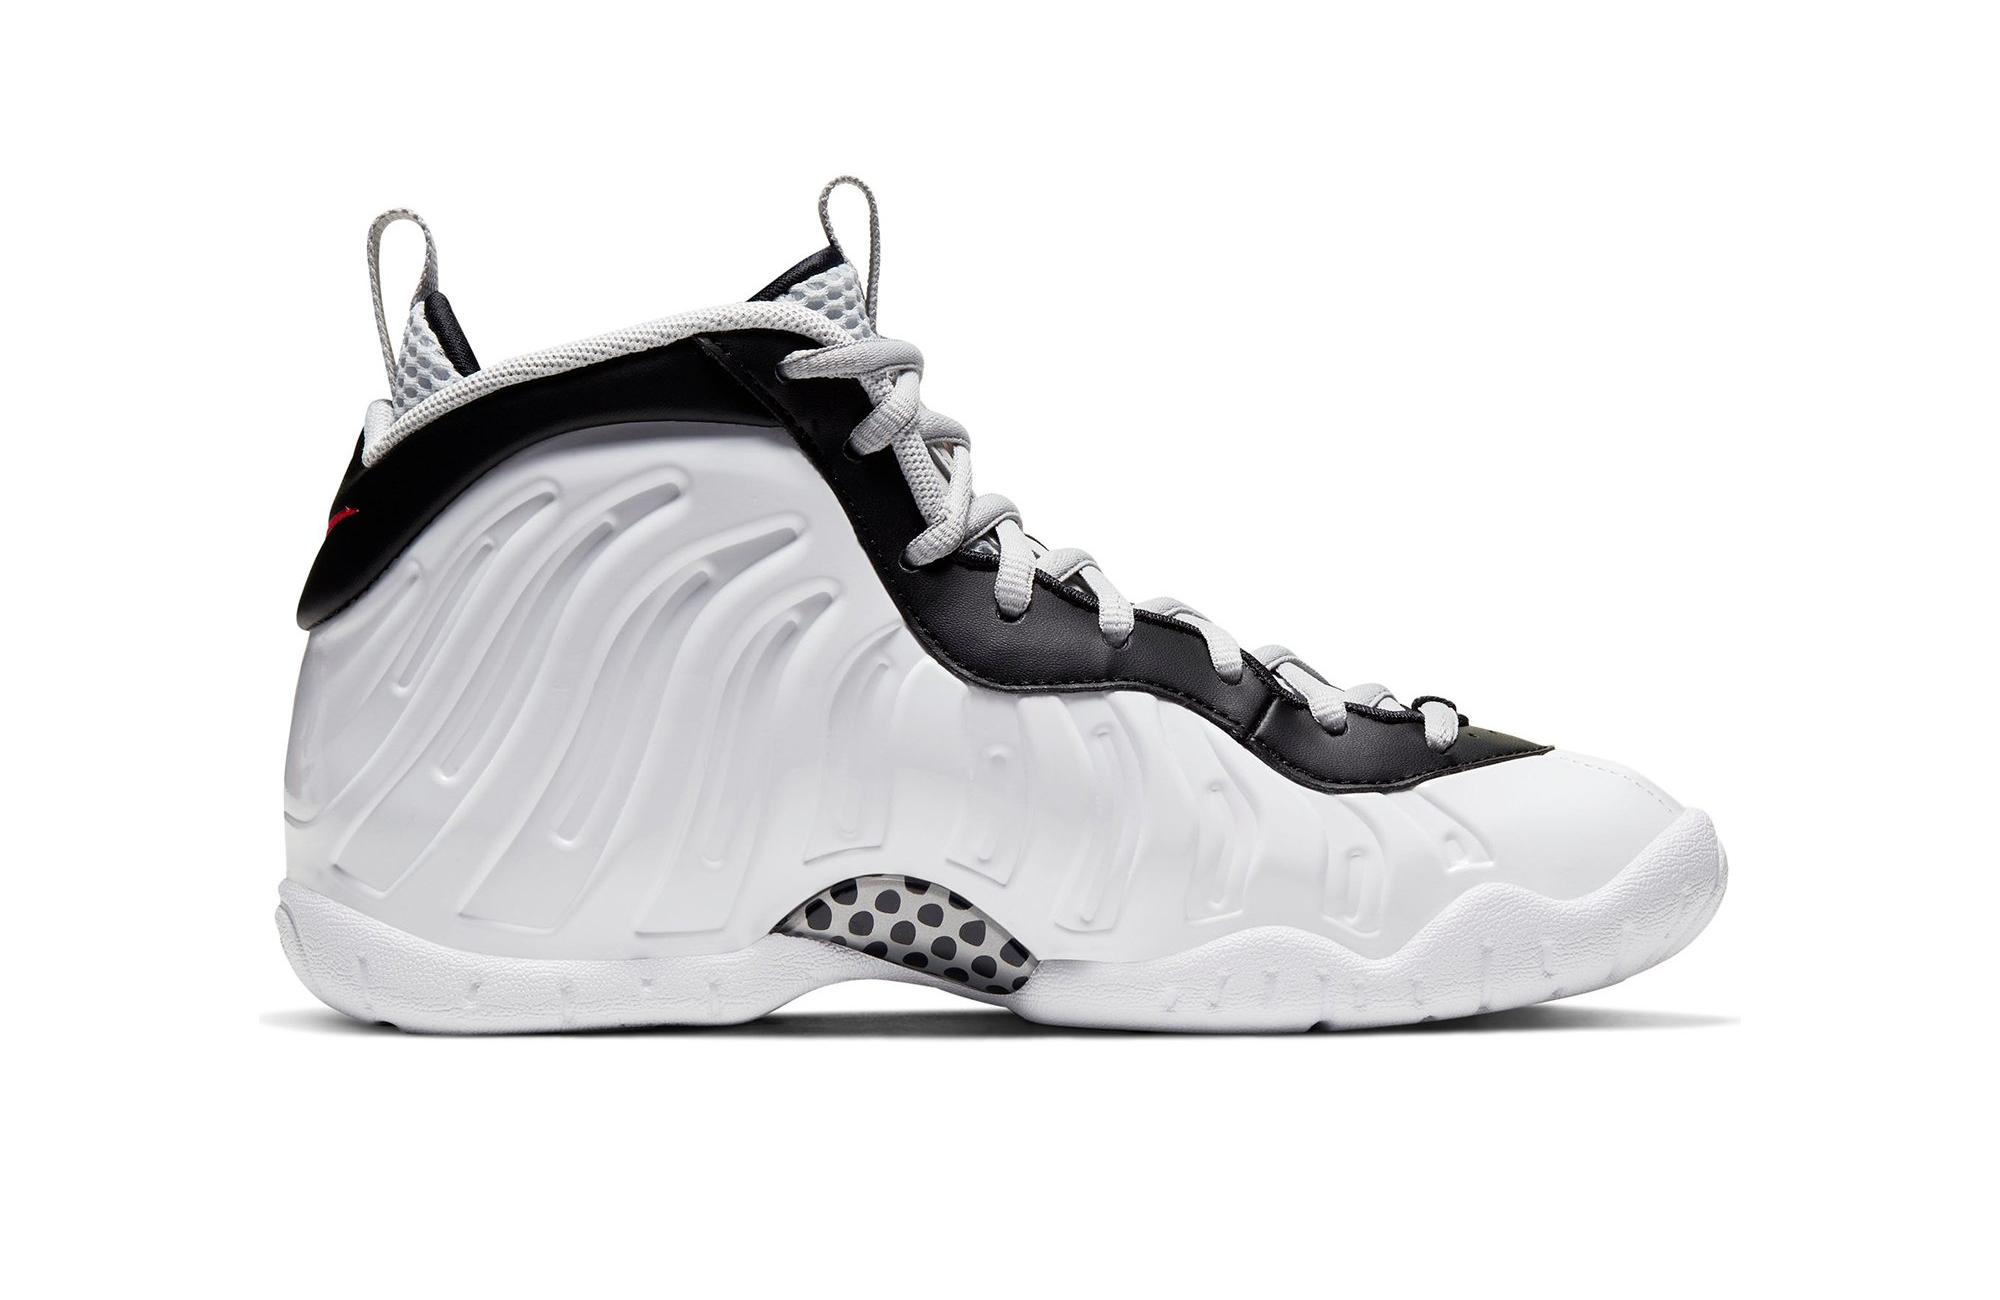 "Nike Air Foamposite and Little Posite Pro ""White/Black/University Red"" right"